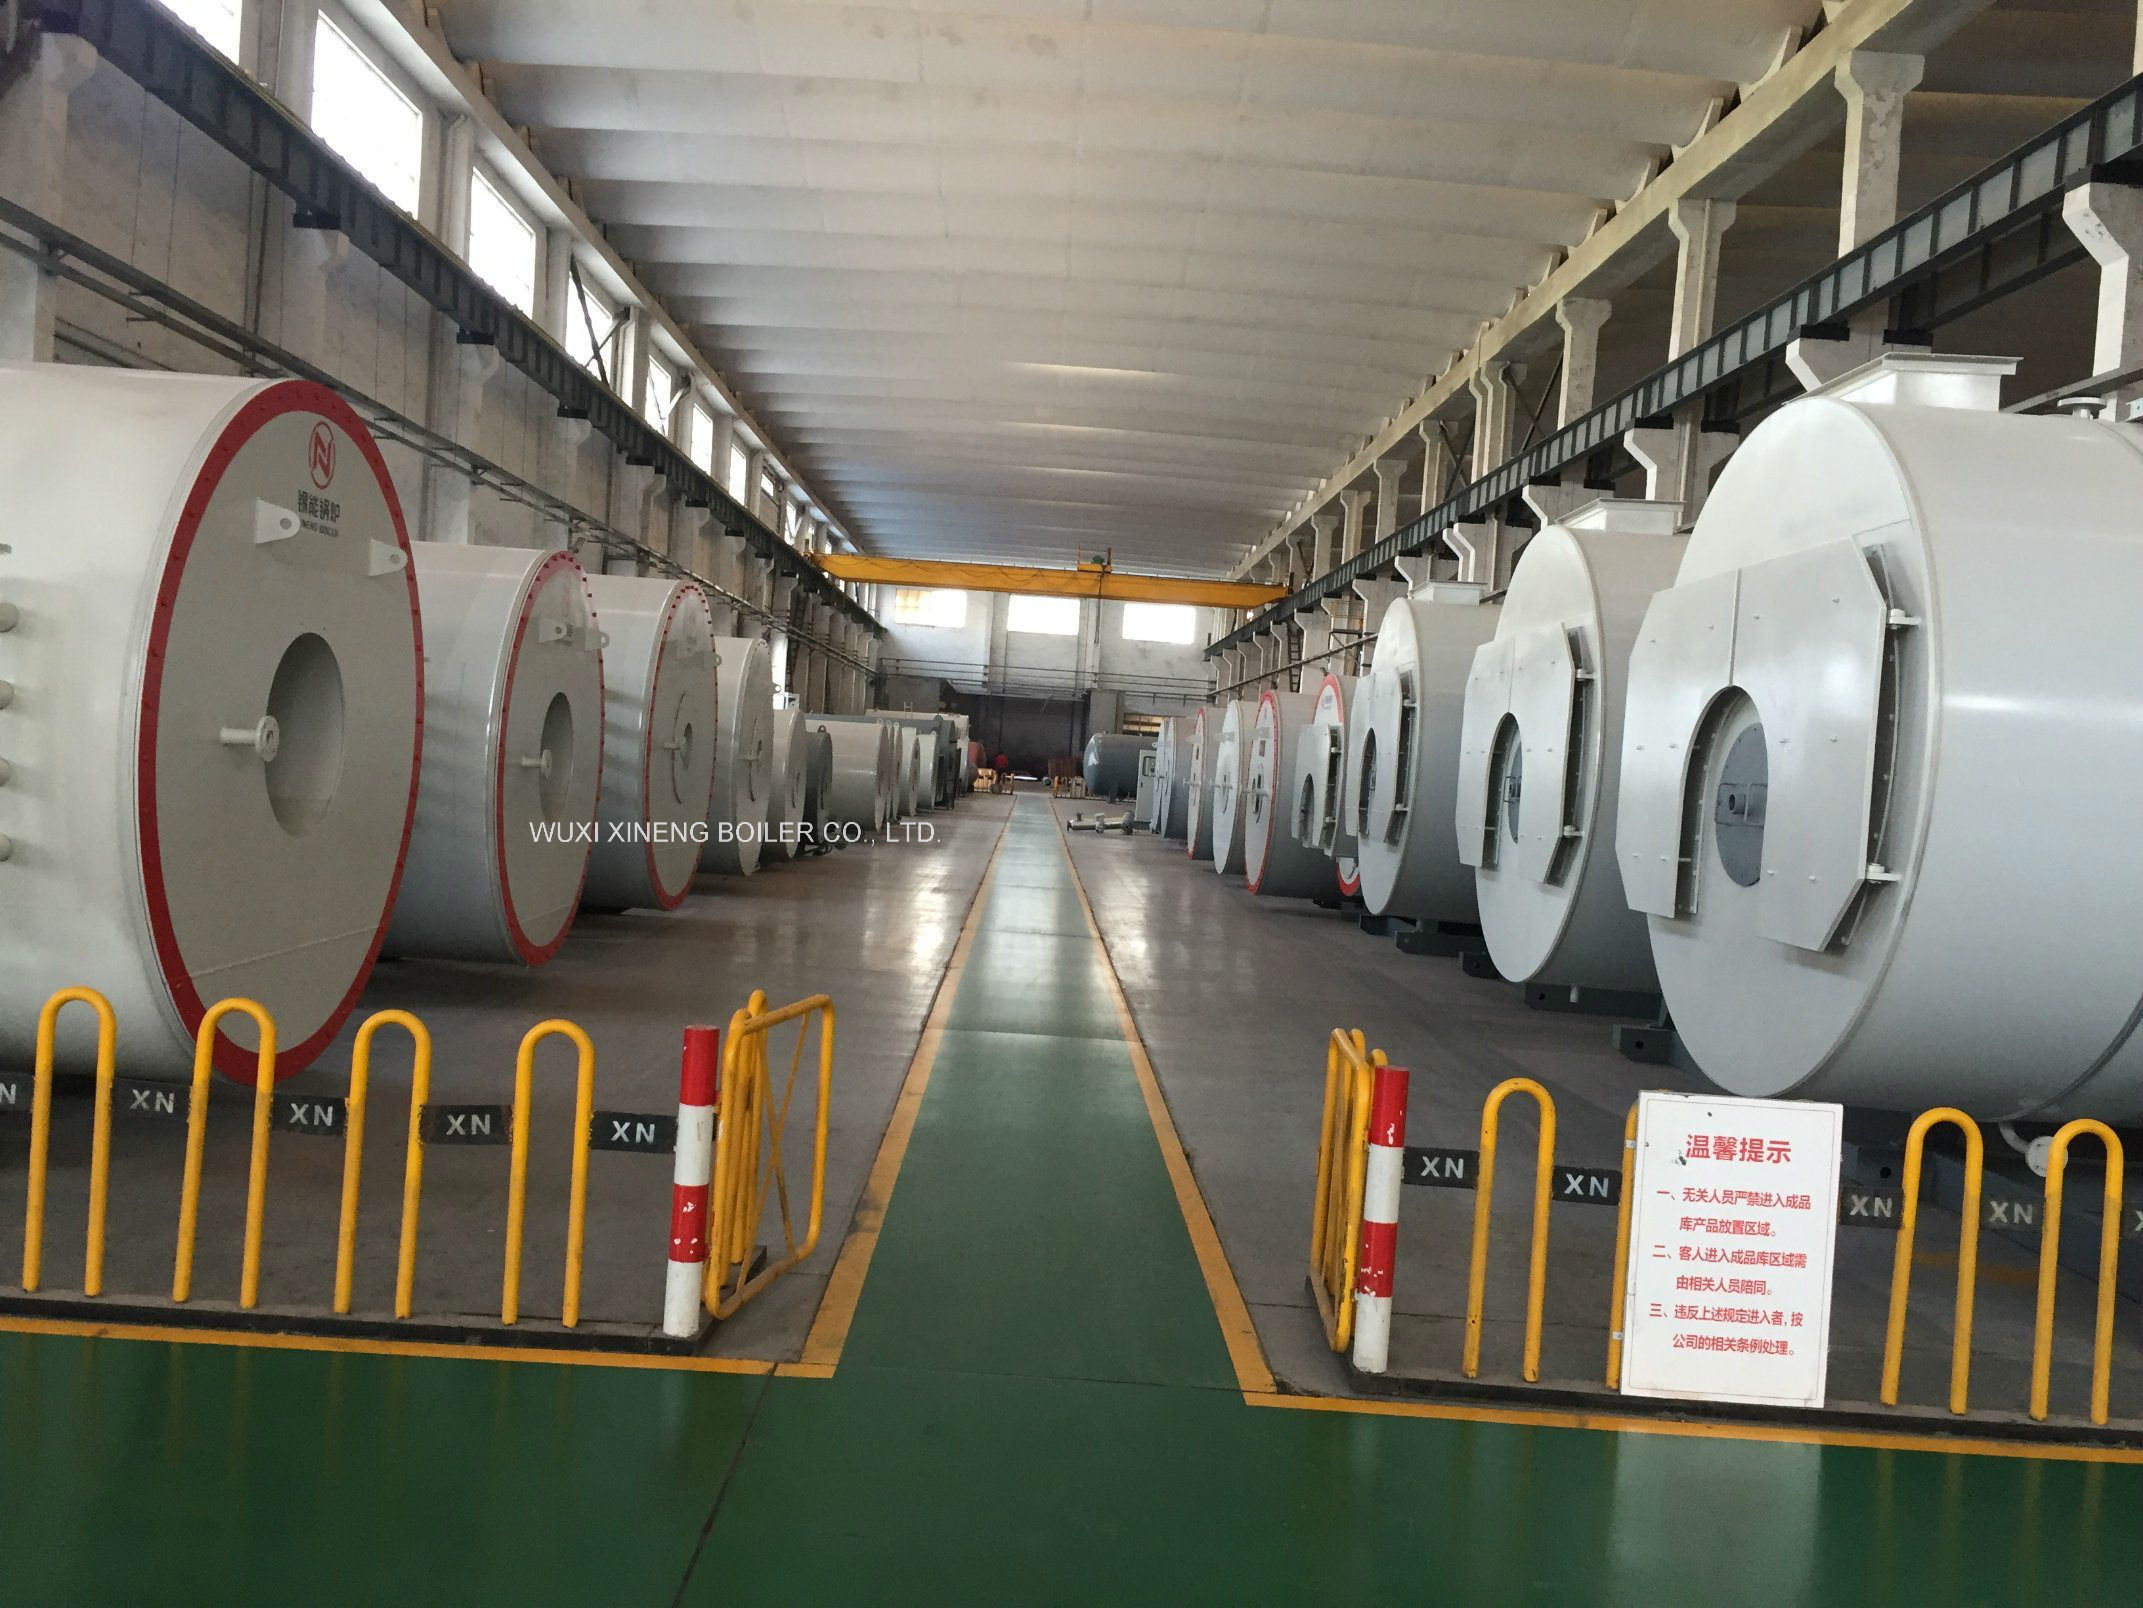 China Szs Oil Fired Steam Boiler/Hot- Water Boiler Photos & Pictures ...